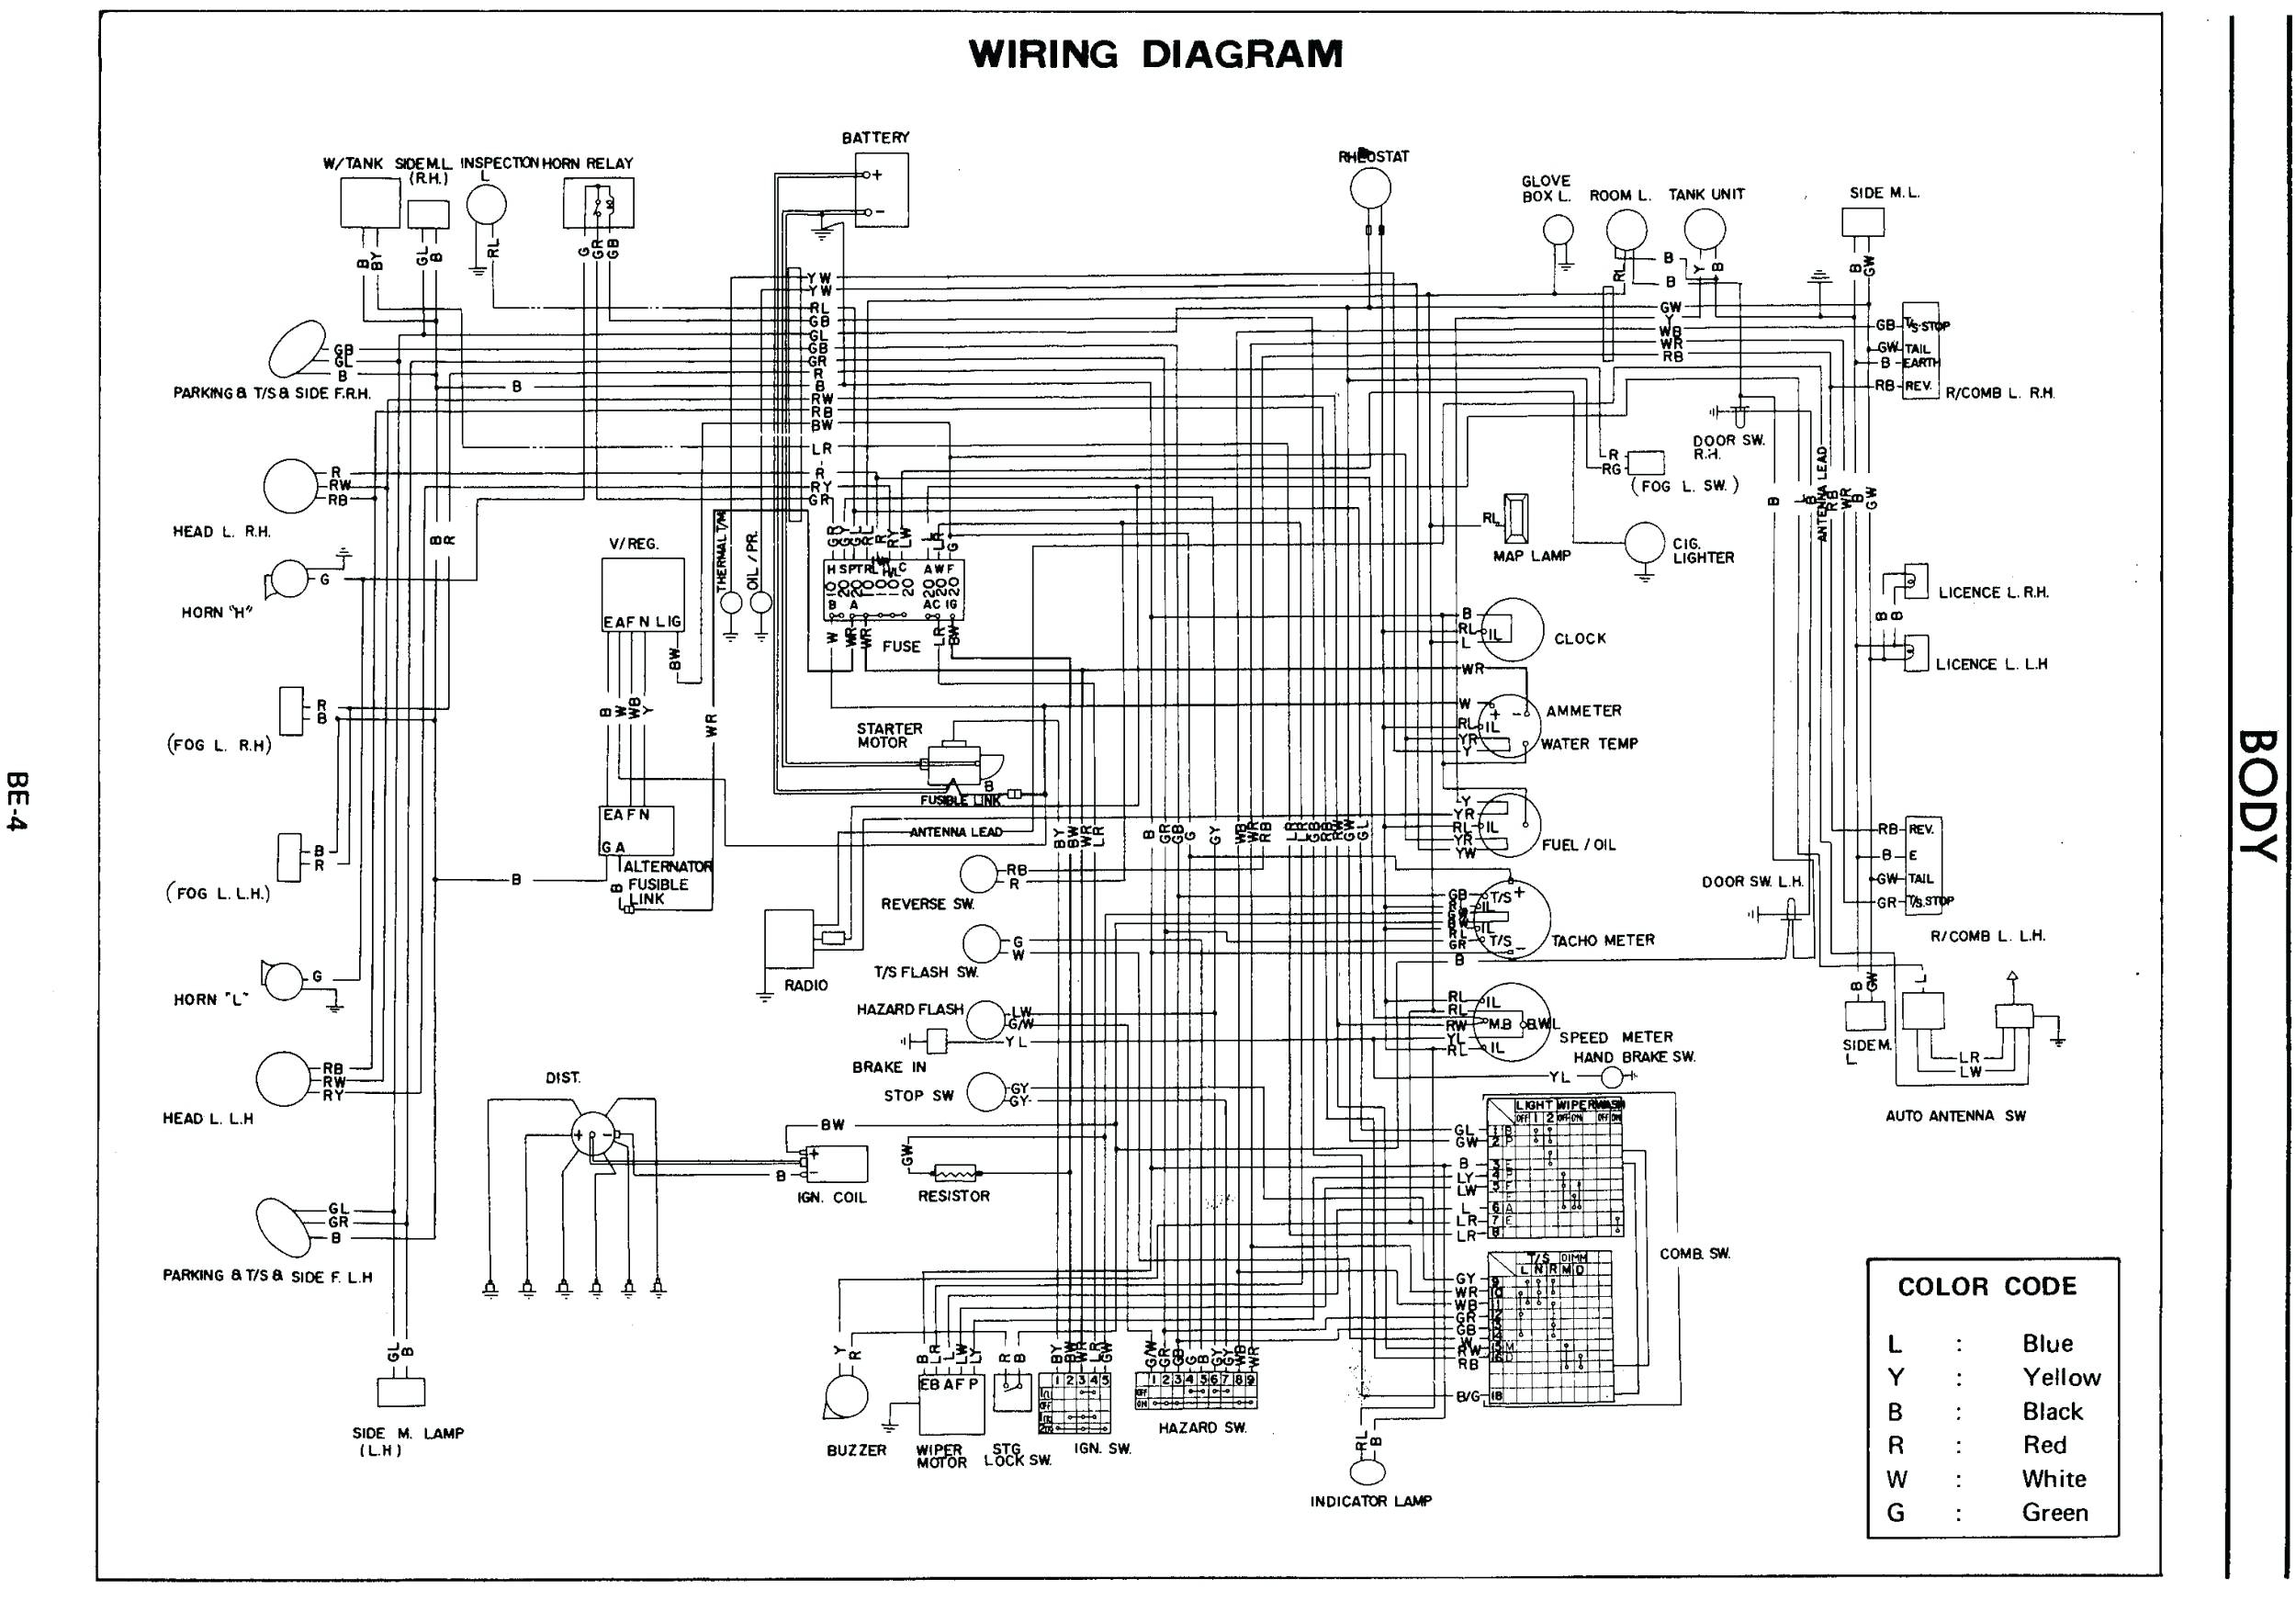 Wiring Diagram For 2003 Sebring